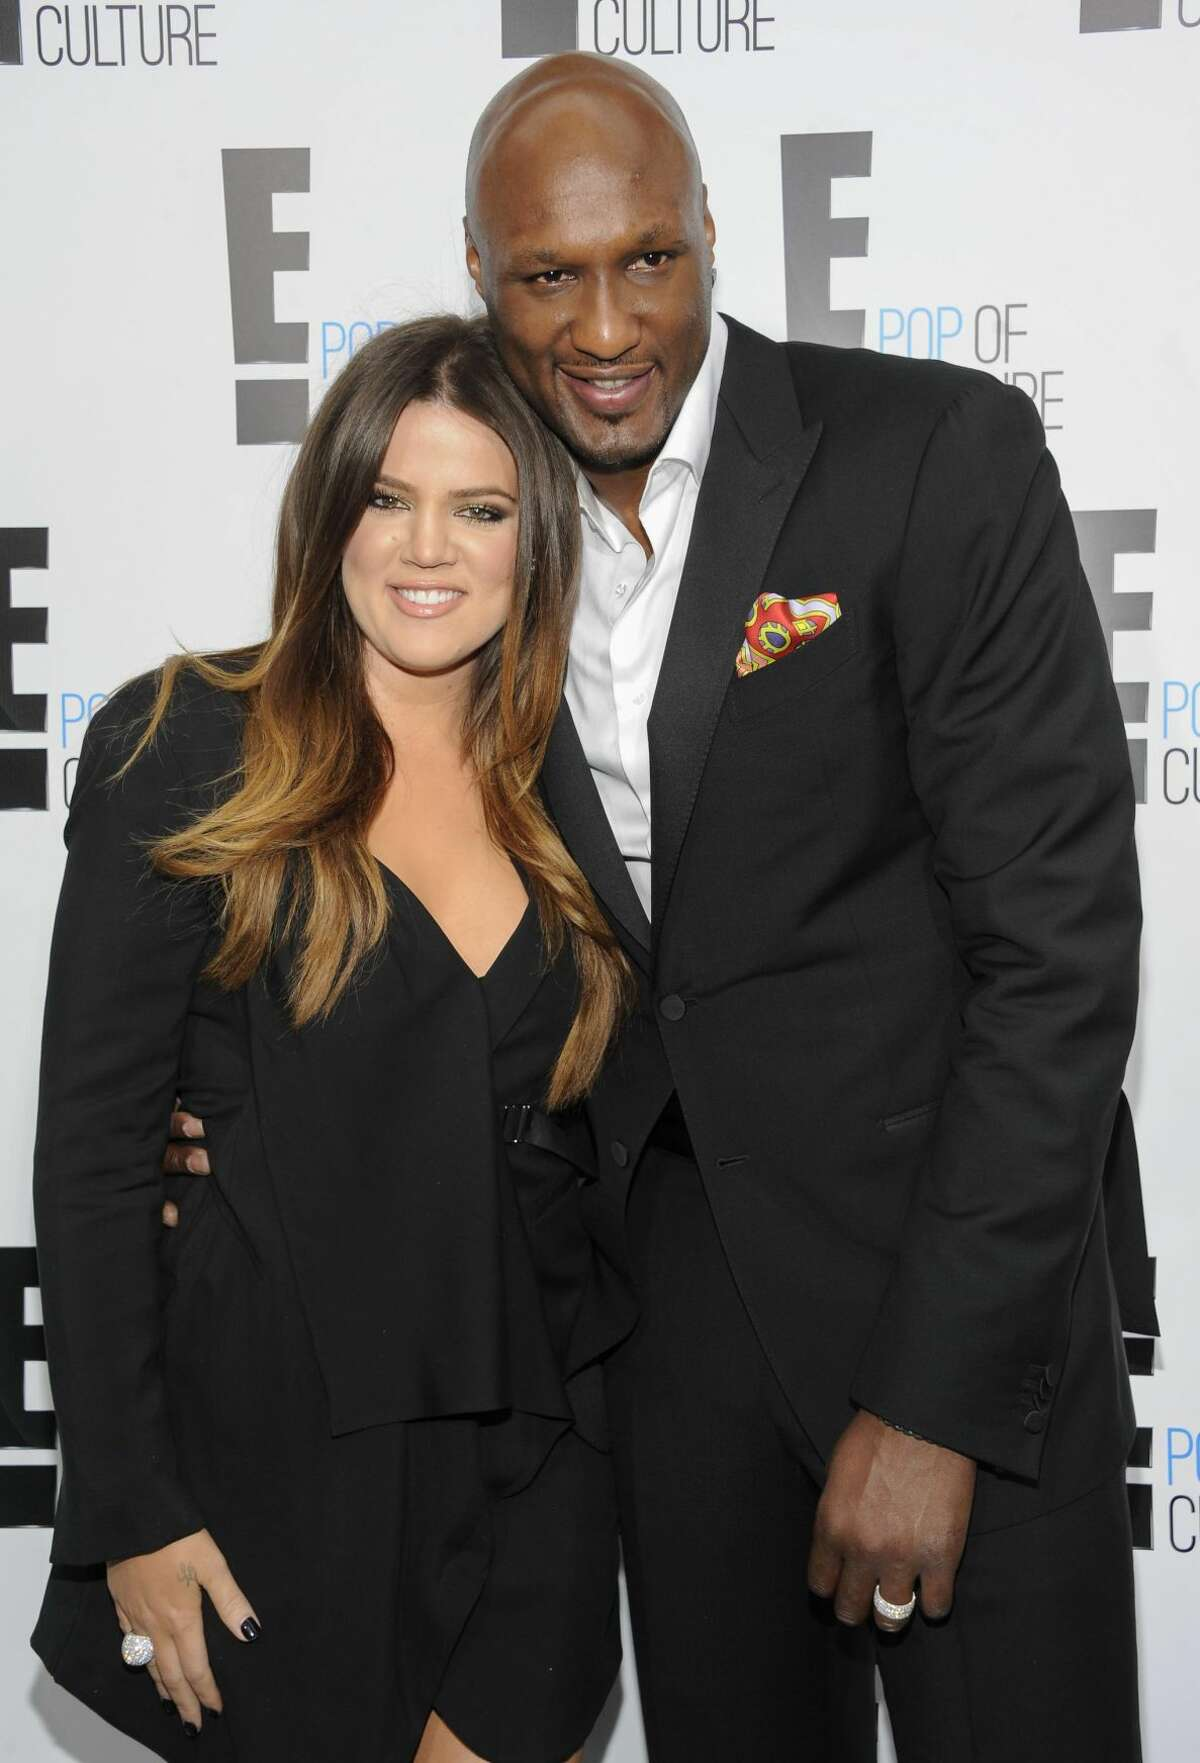 FILE - This April 30, 2012 file photo shows TV personality Khloe Kardashian Odom and professional basketball player Lamar Odom from the show